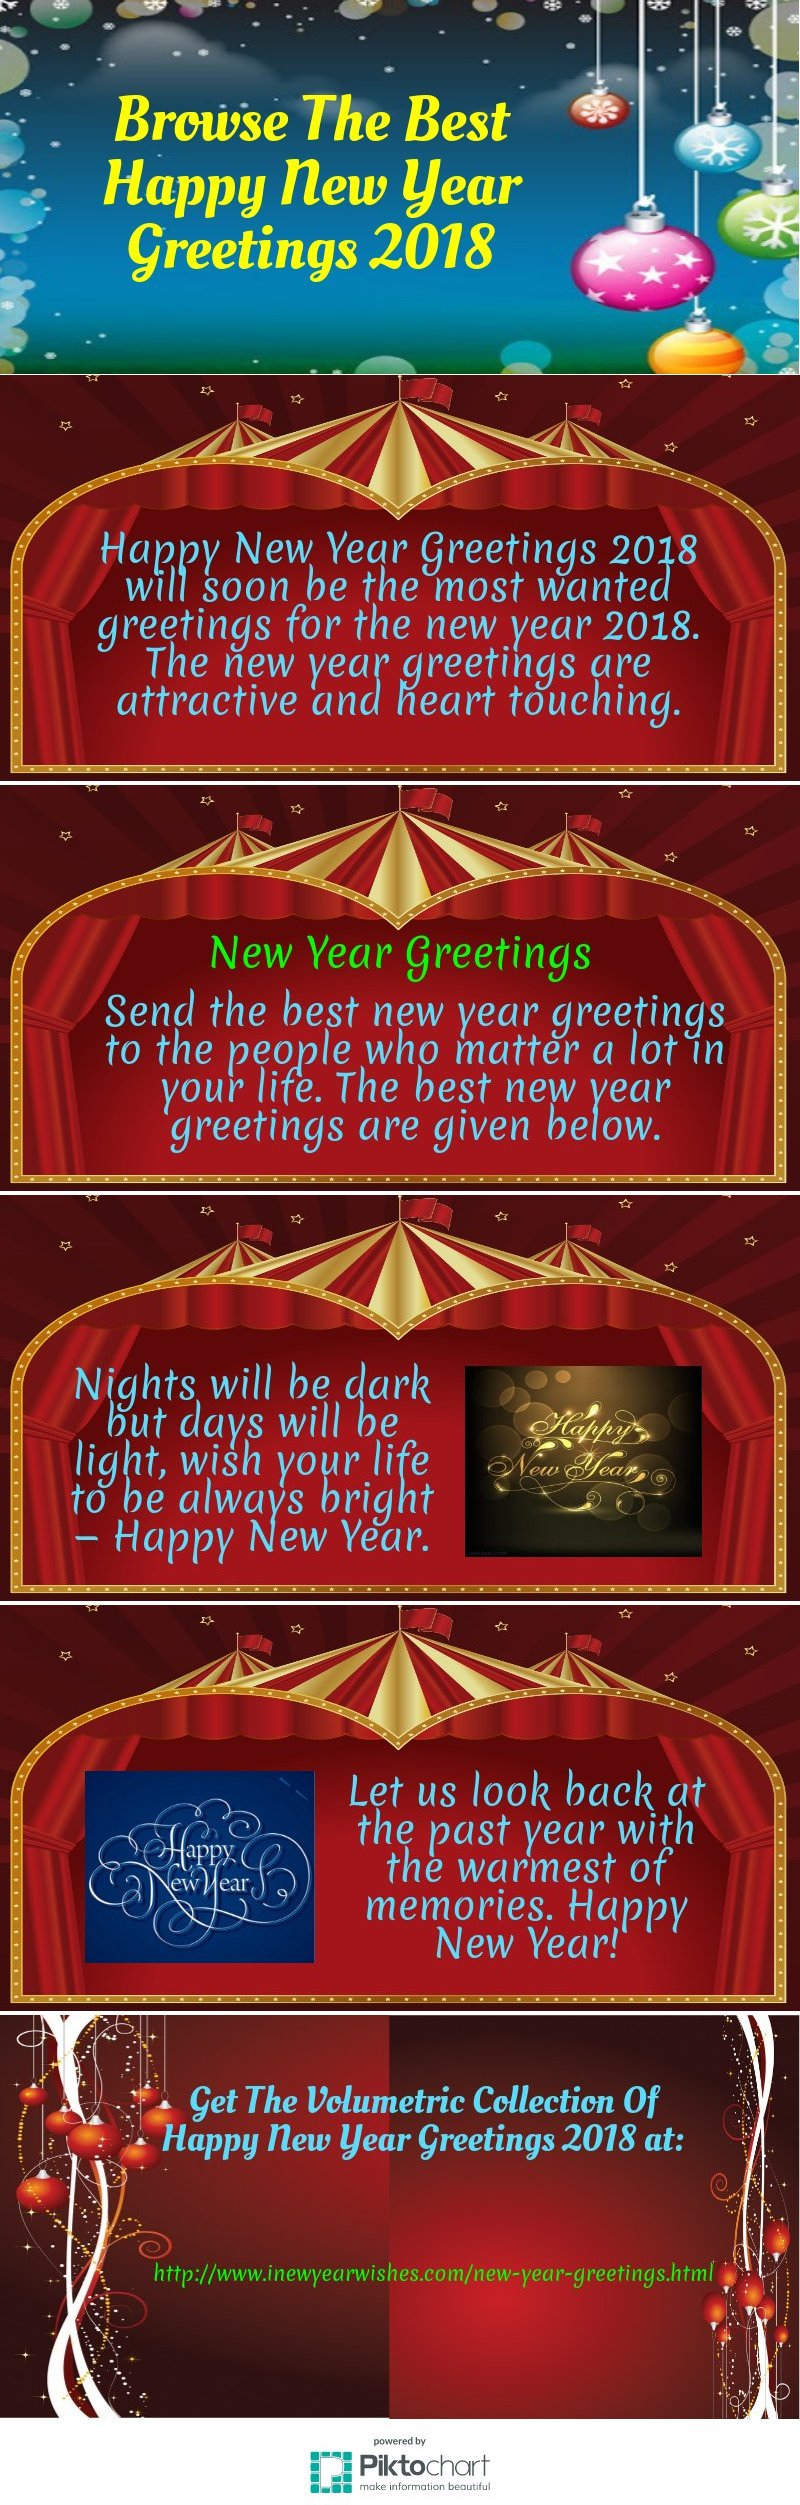 browse the best happy new year greetings 2018 piktochart visual editor